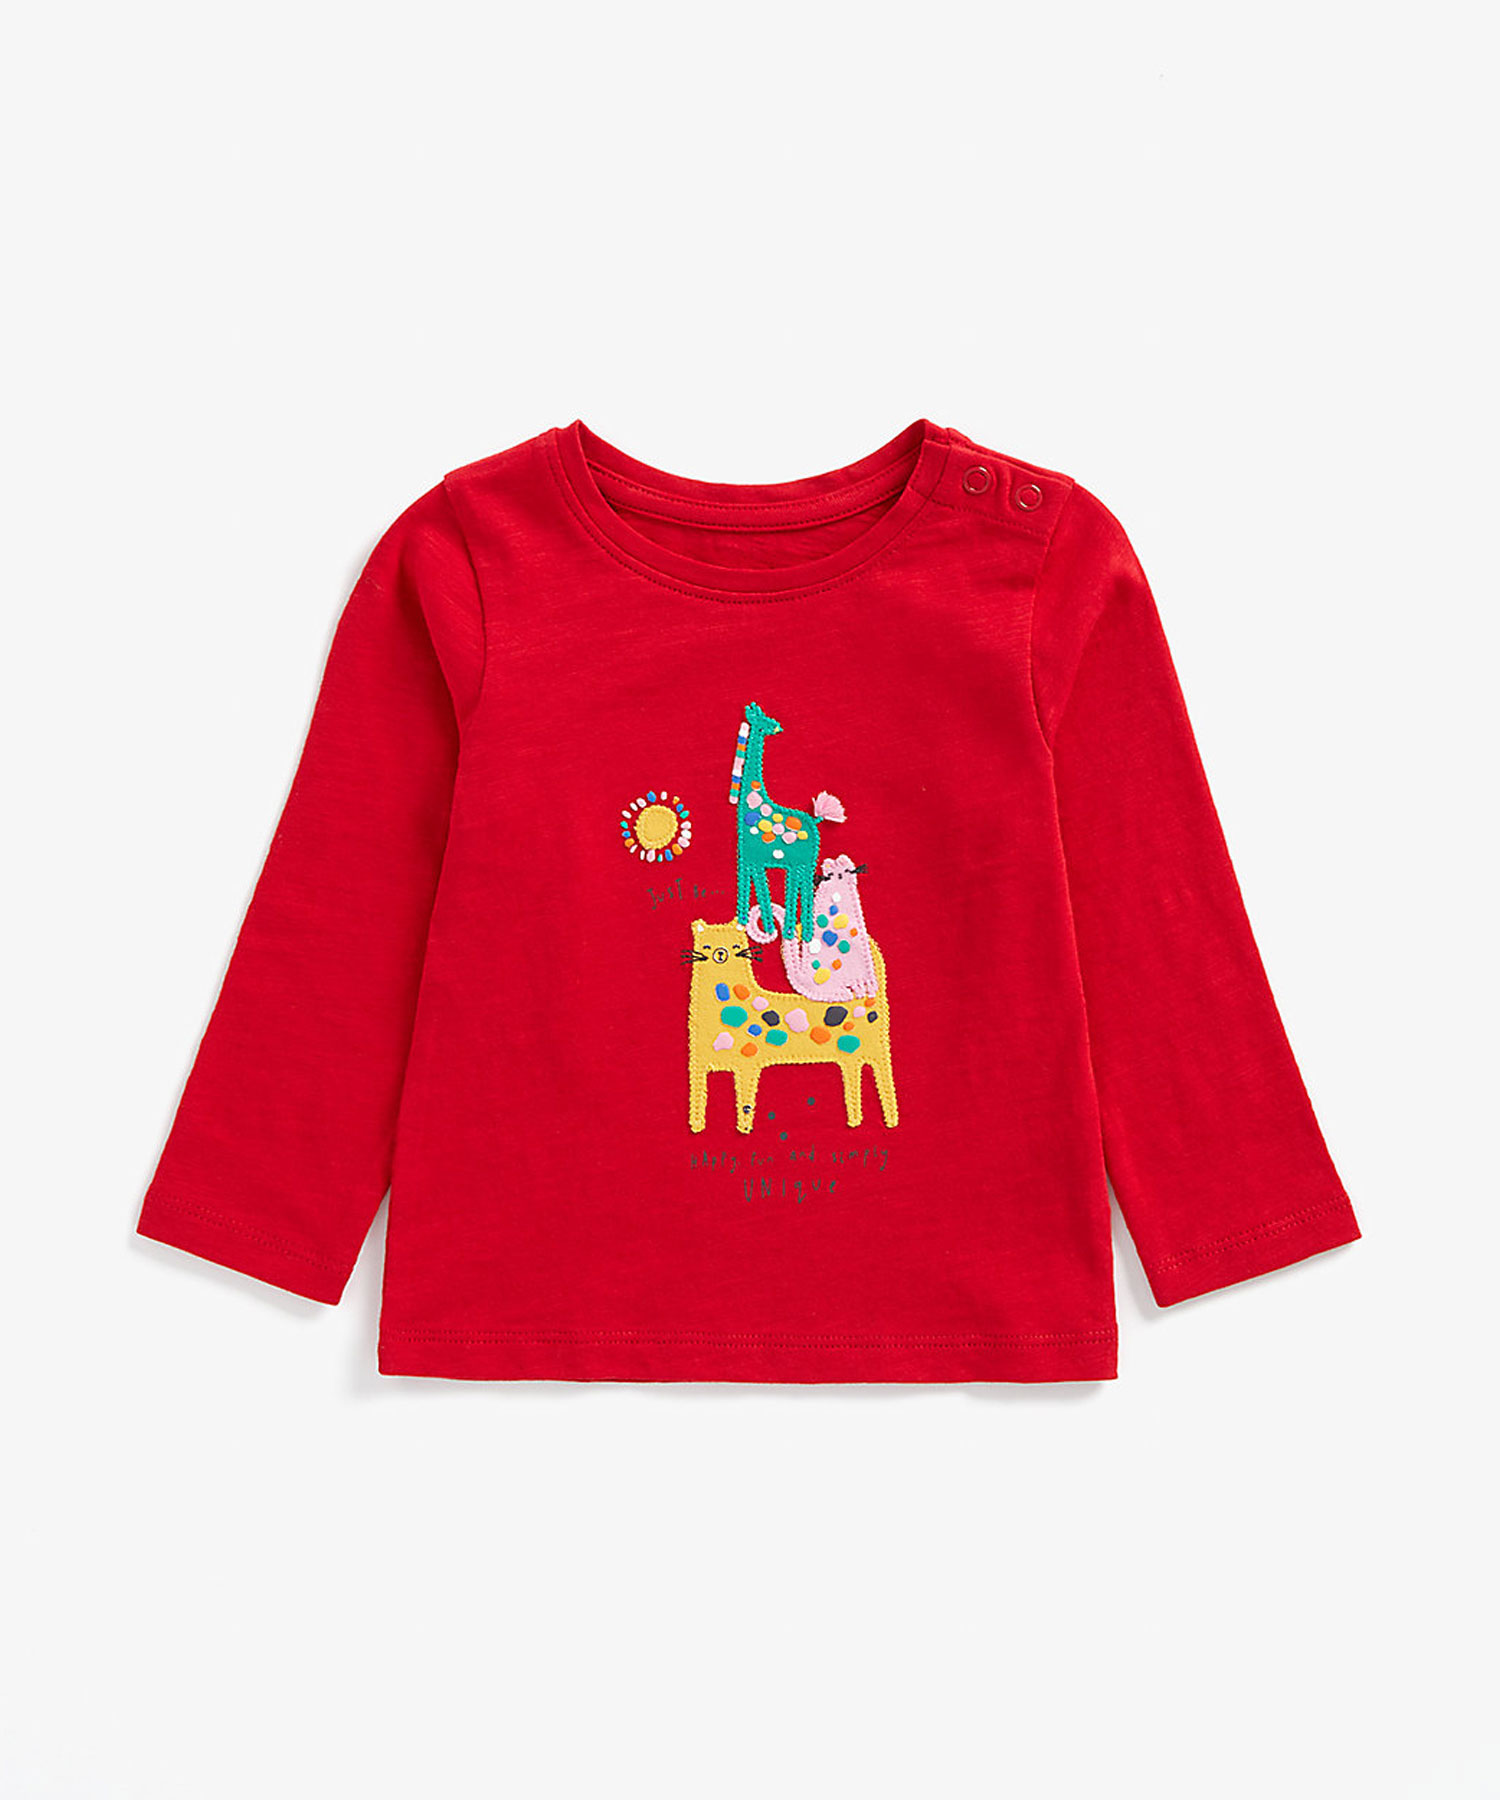 Mothercare | Girls Full Sleeves T-Shirt Animal Embroidery - Red